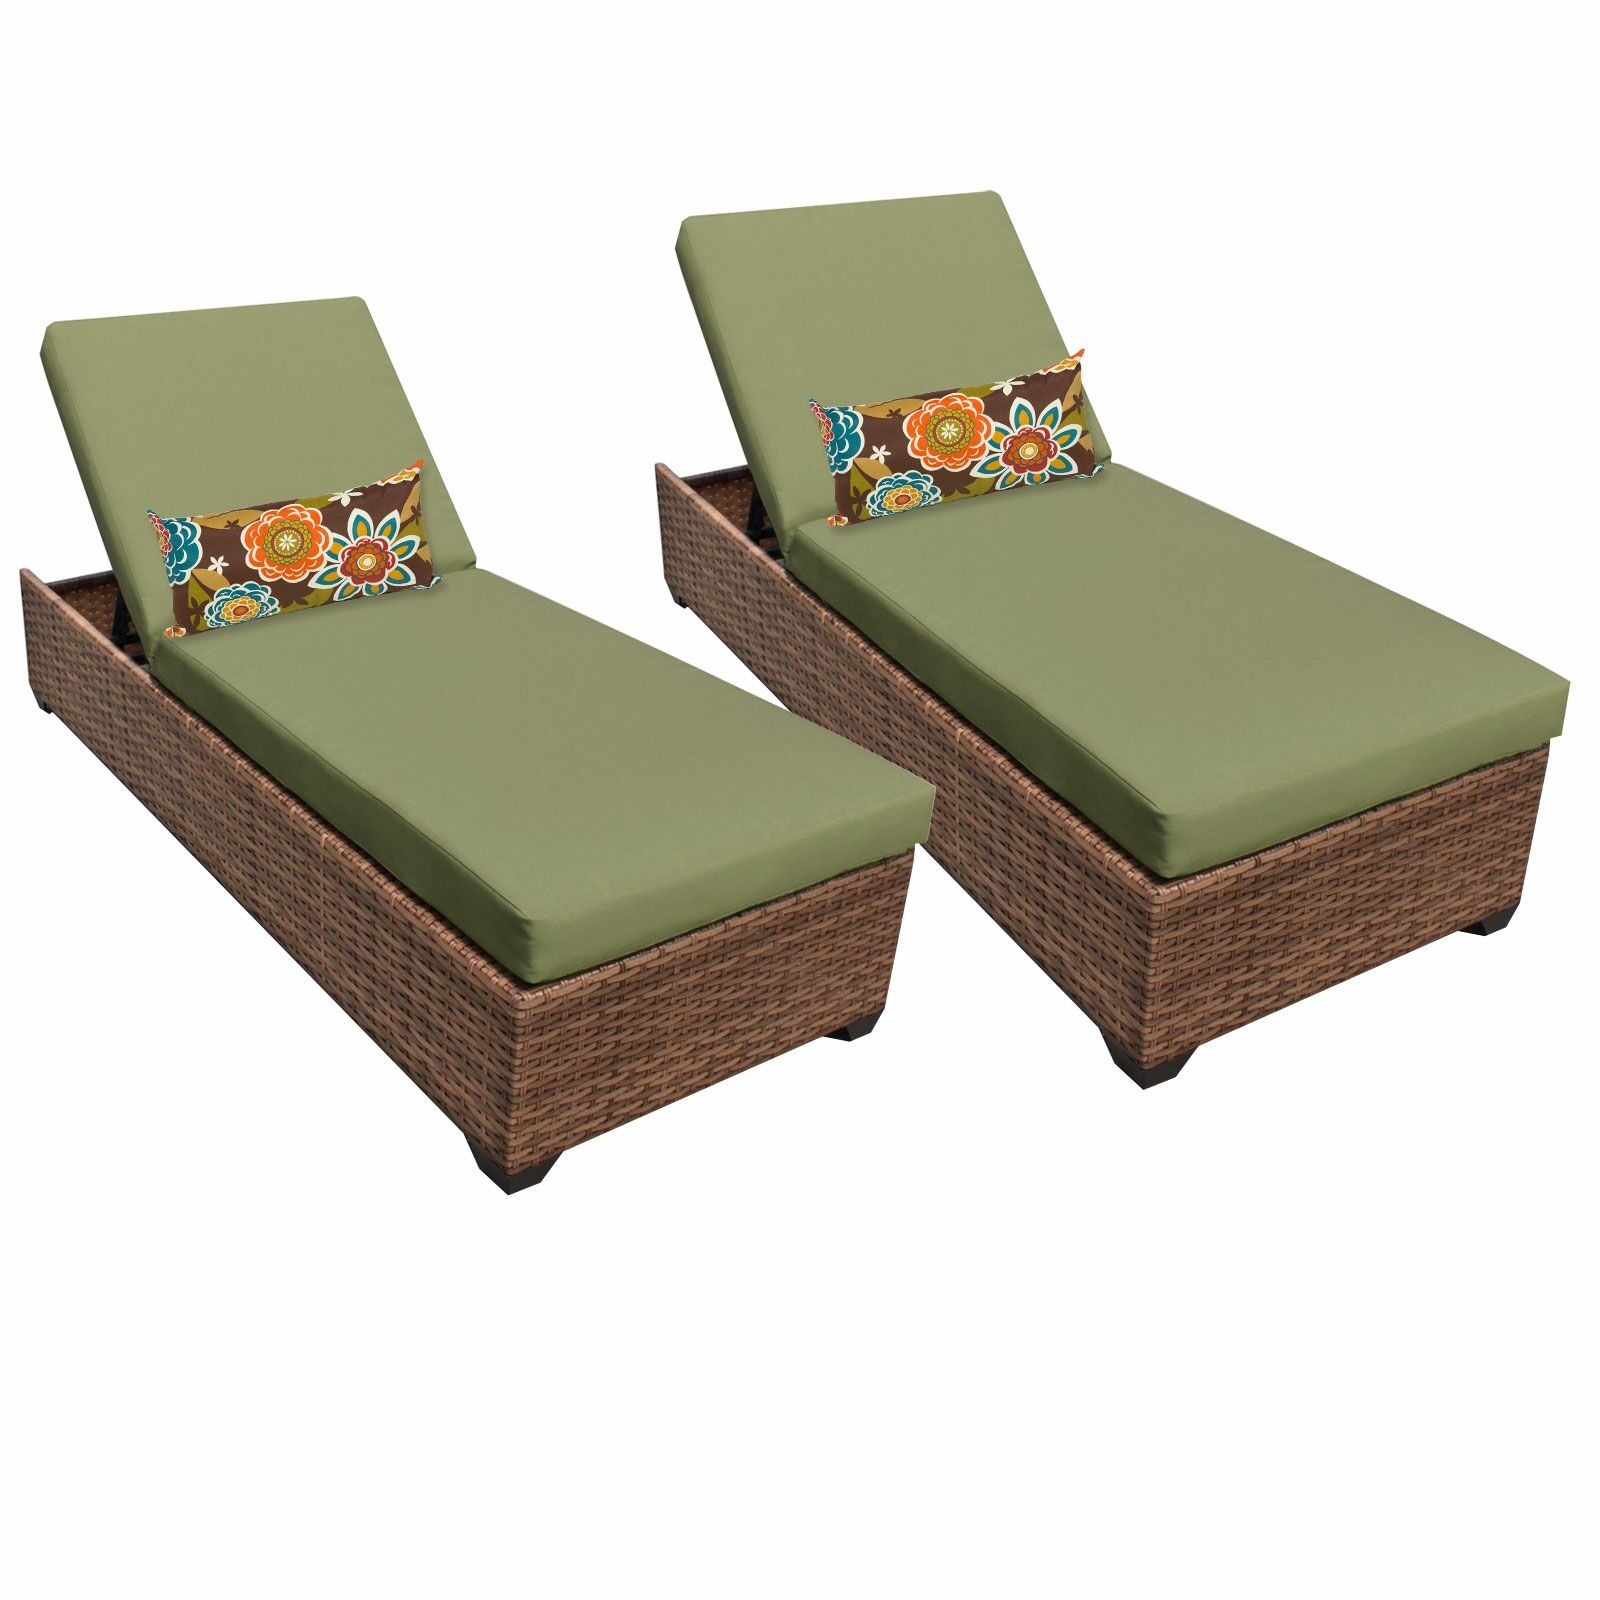 Asellus Chaise Lounge with Cushion Color: Cilantro